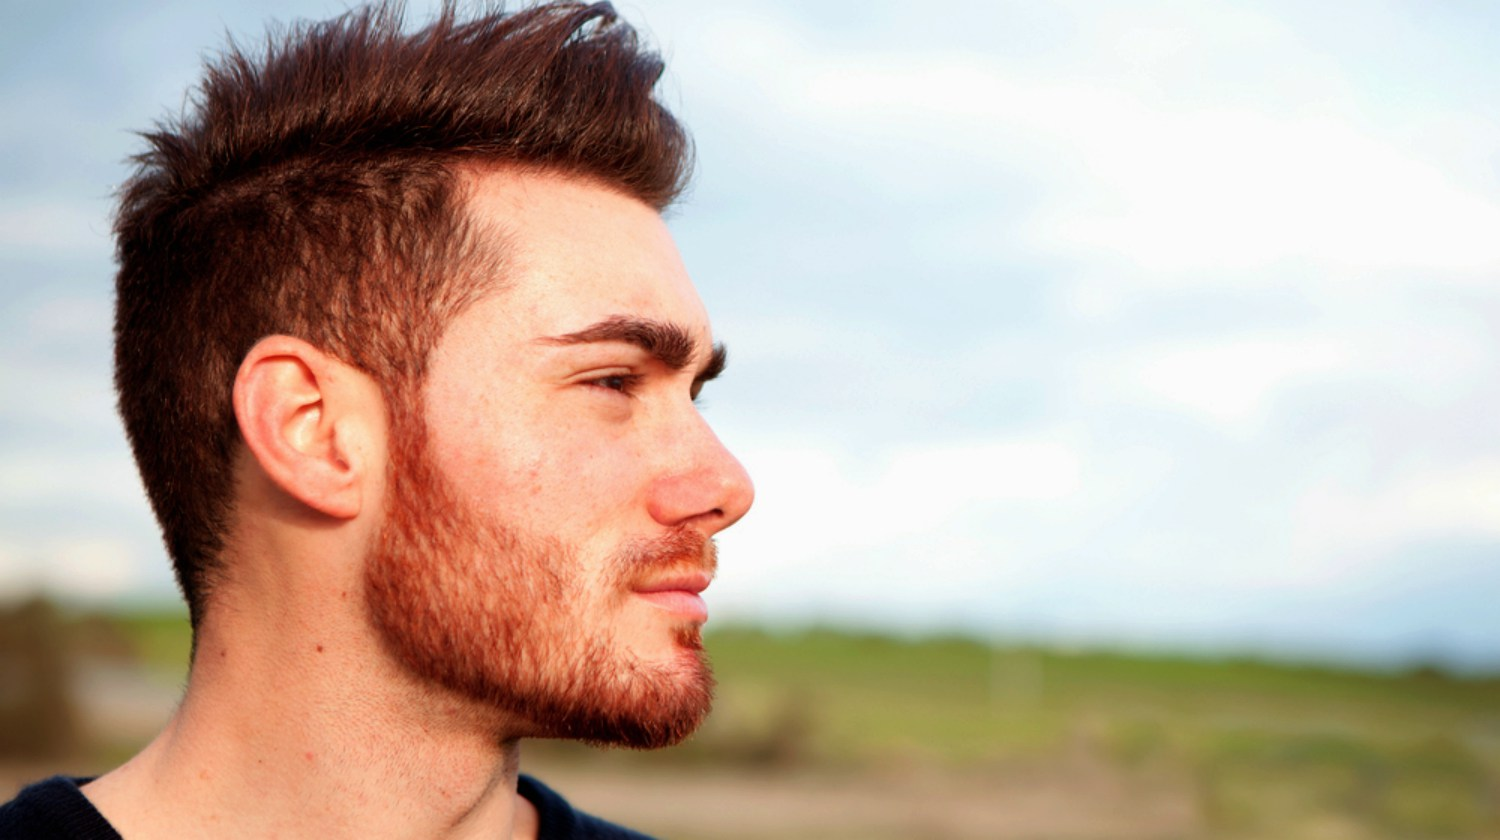 Choose The Perfect Short Beard Styles According To Your Face Shape